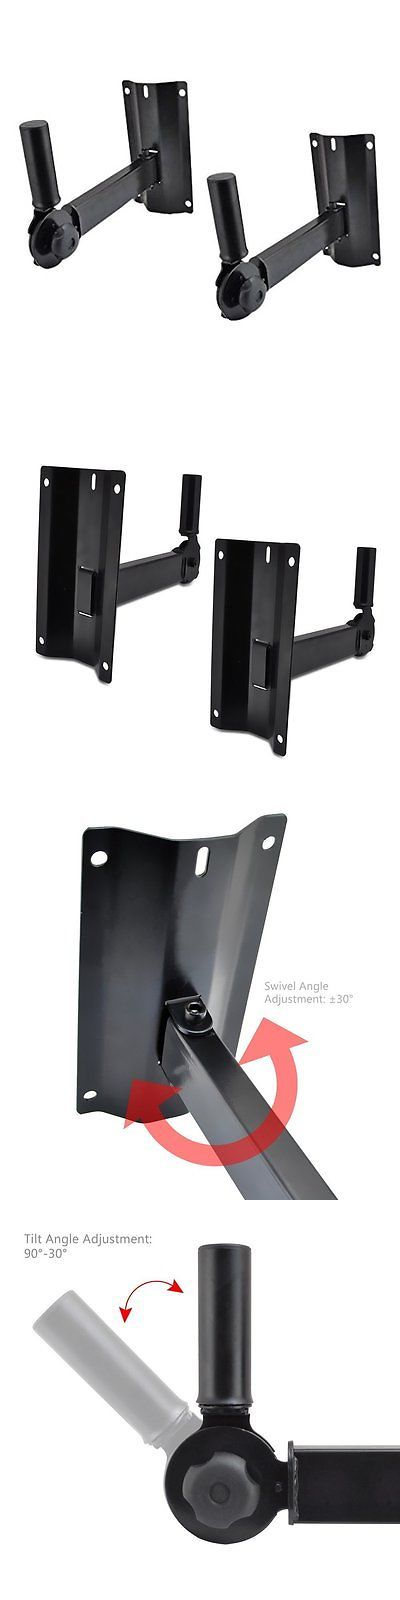 Speaker Mounts and Stands: Pyle Pstndw15 Dual Universal Adjustable Wall Mount Speaker Bracket Stands With -> BUY IT NOW ONLY: $34.47 on eBay!